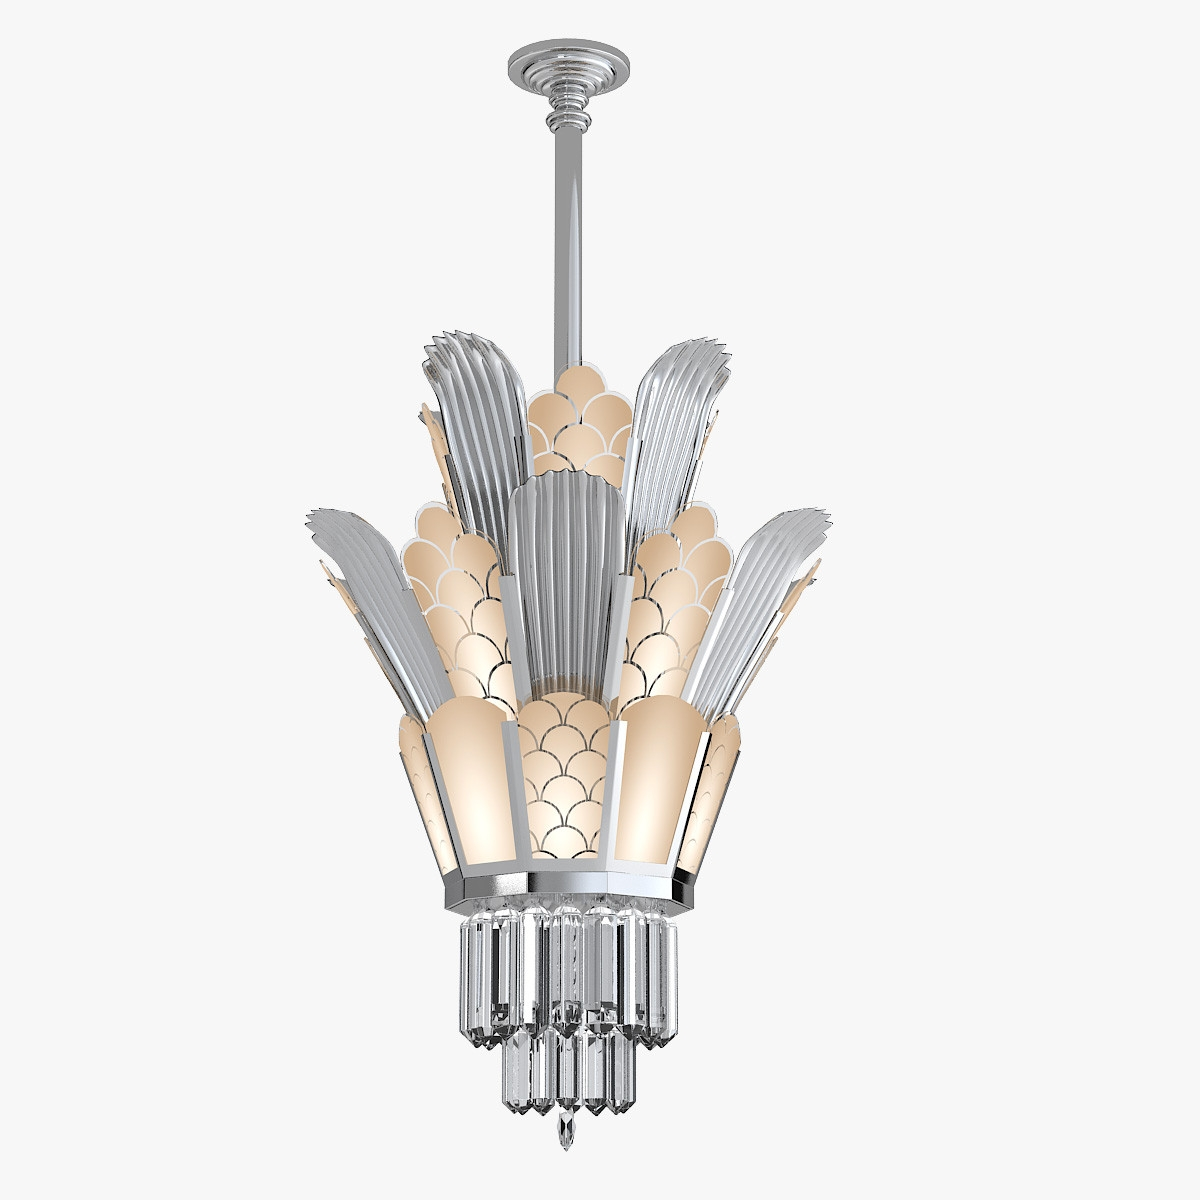 Model Andy Torton Art Deco Pertaining To Art Deco Chandelier (Image 11 of 15)